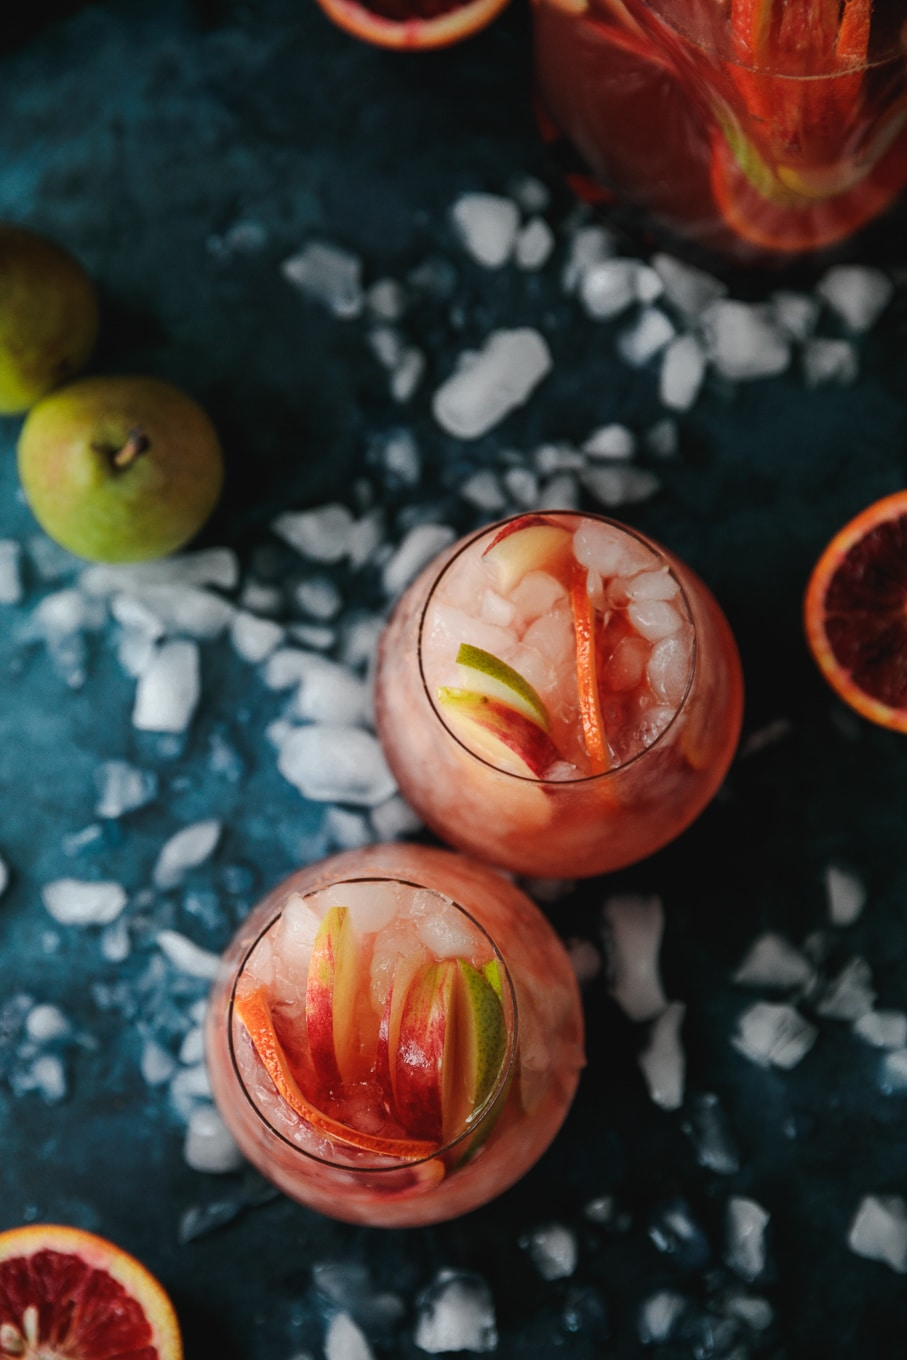 Overhead shot of two pink sparkling blood orange cocktails garnished with pears, apples, and blood orange slices, against a dark blue background with crushed ice scattered around